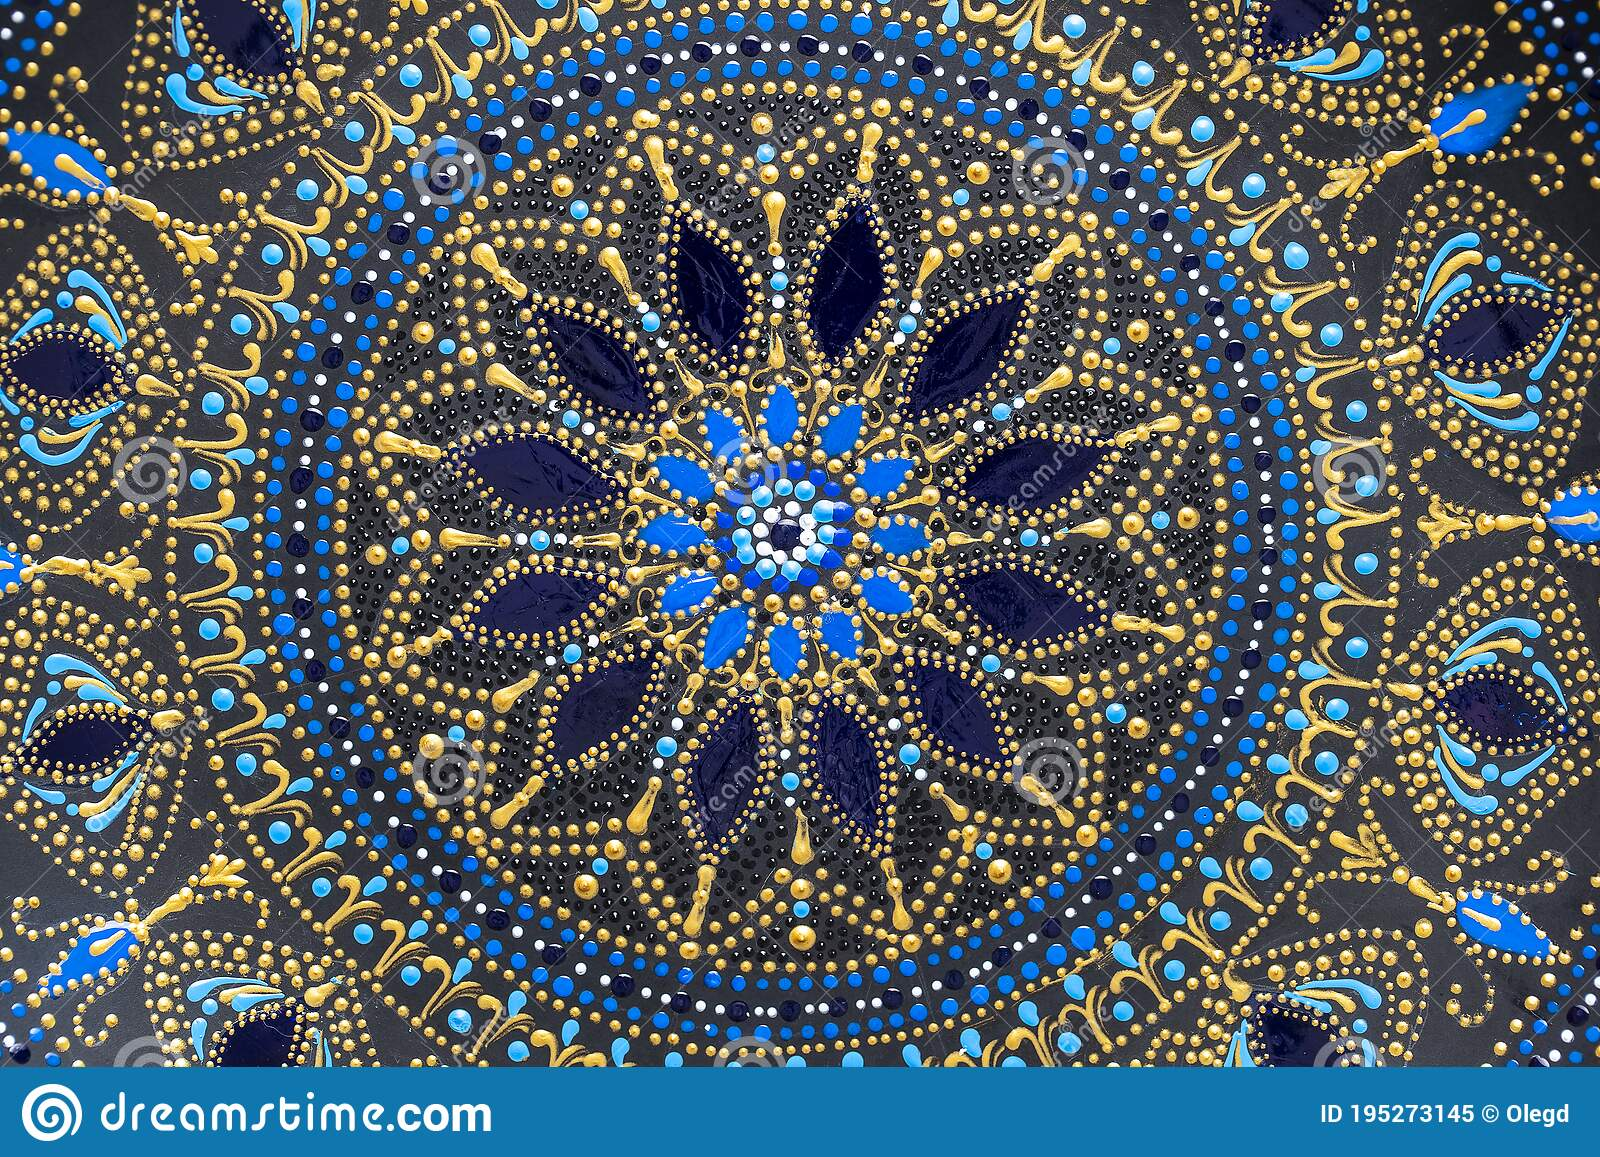 Decorative Ceramic Plate With Black Blue And Golden Colors Painted Plate On Background Dot Painting Stock Image Image Of Abstract Blue 195273145